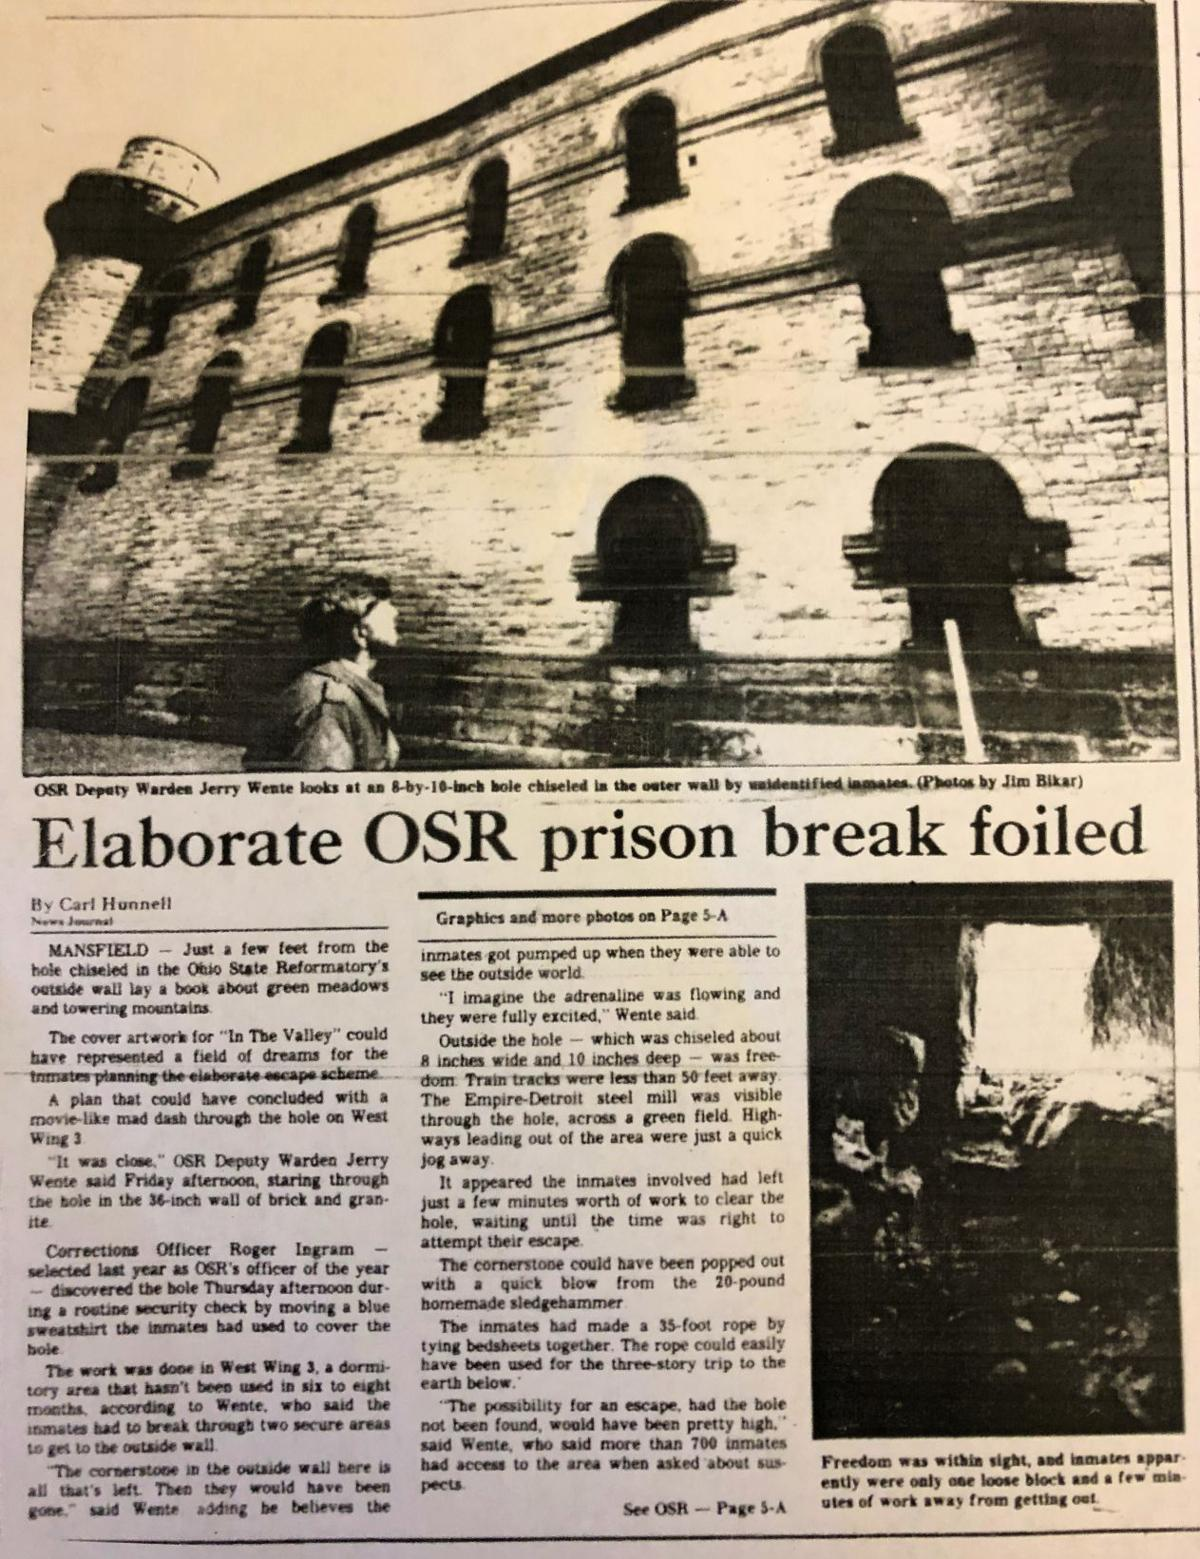 Before Shawshank, real inmates at OSR tried to tunnel their